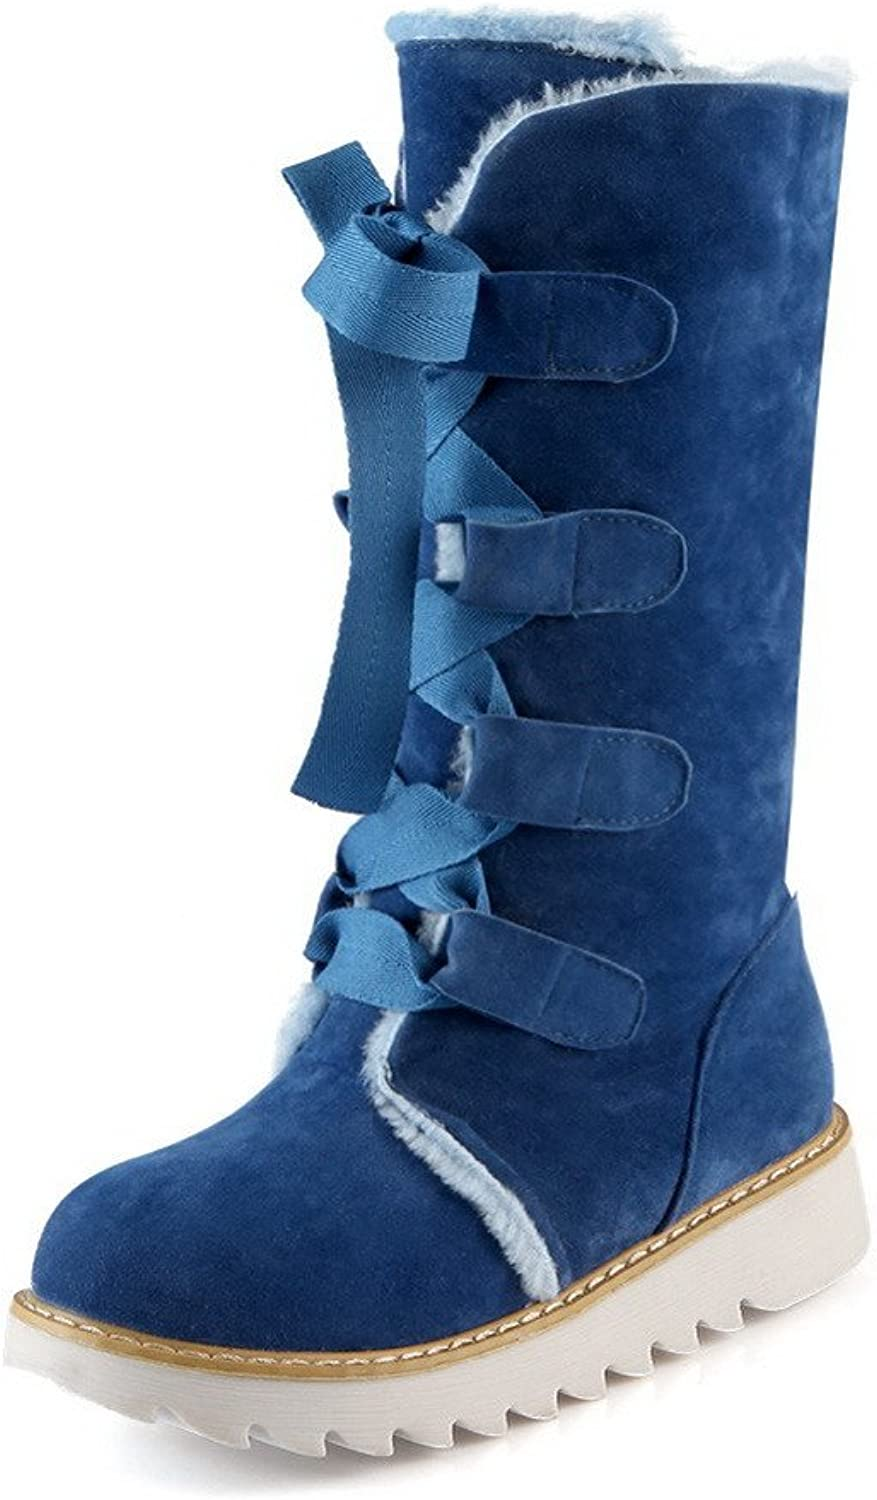 WeenFashion Women's Solid Low-Heels Round Closed Toe Imitated Suede Lace-up Boots